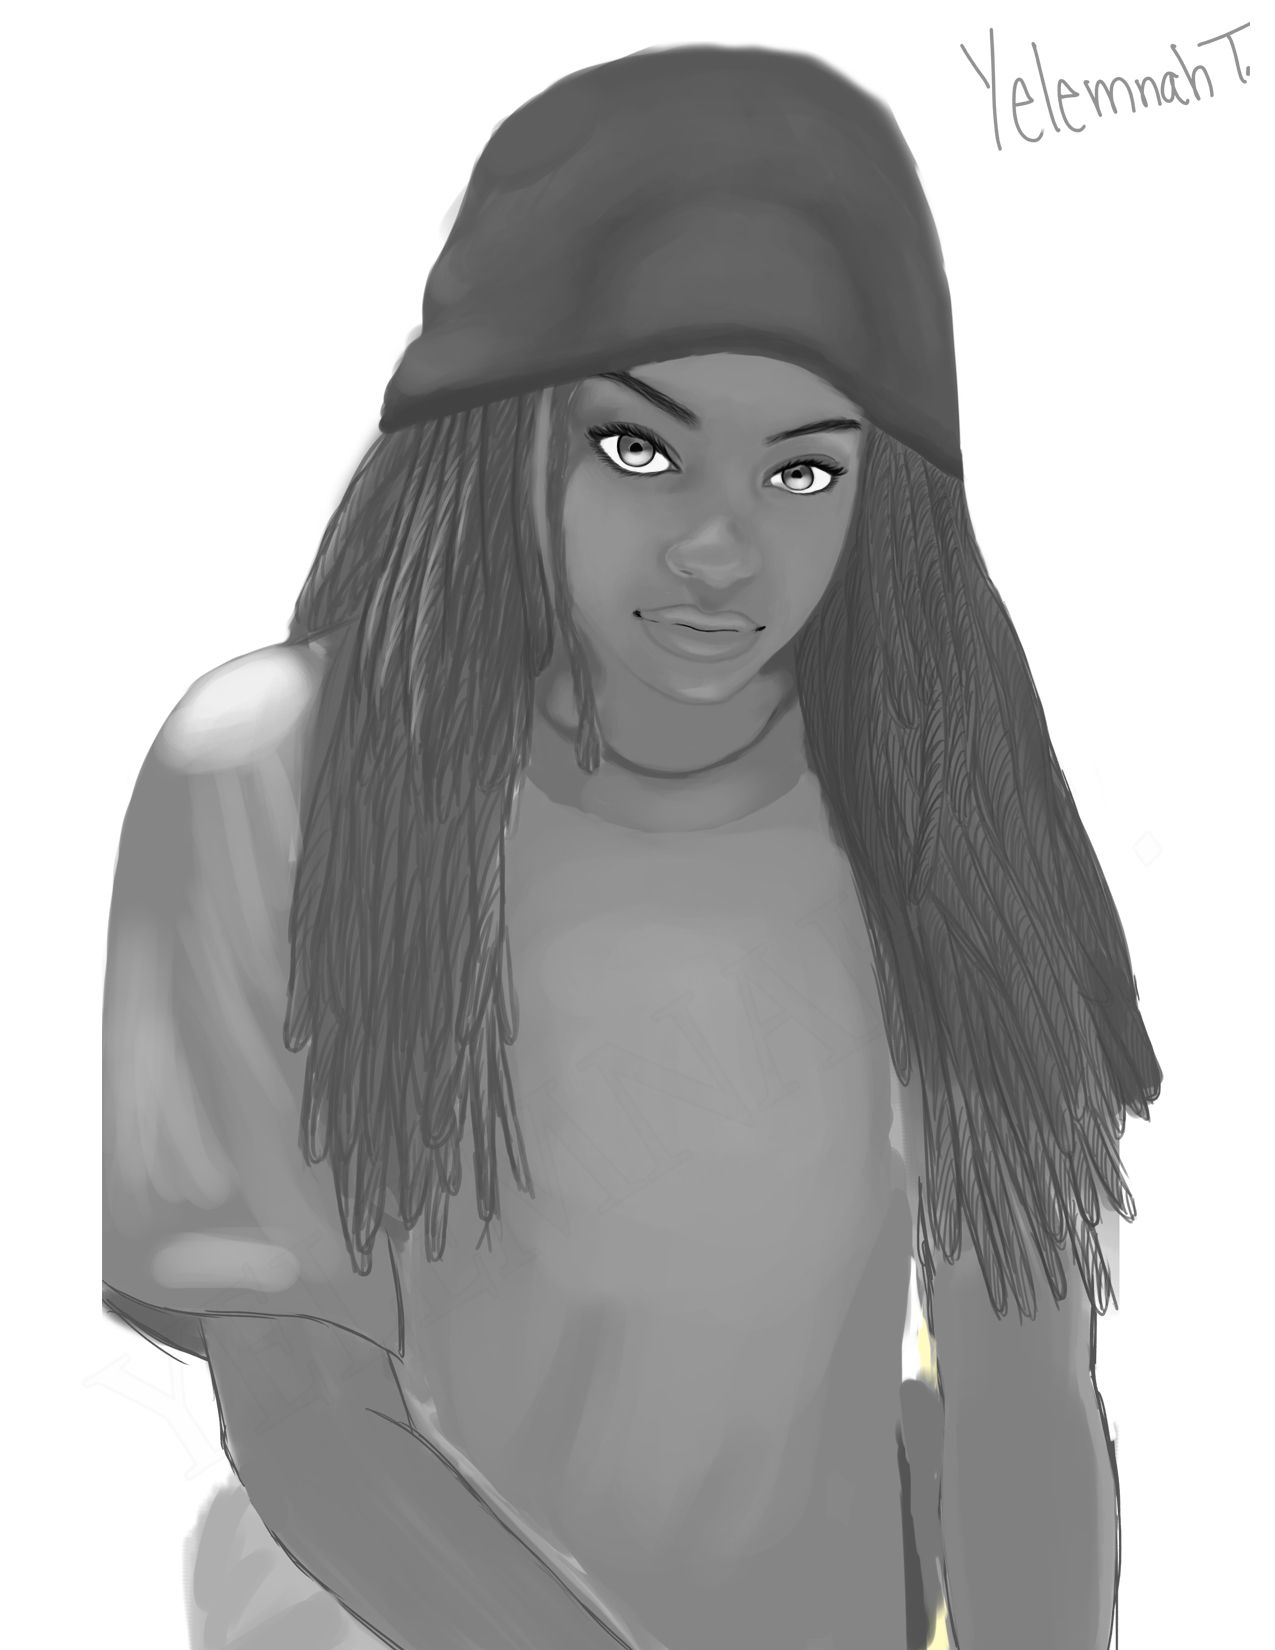 Yelemnah Tessema Those Eyes (Black and White) 28 x 28in. Digital, 2013